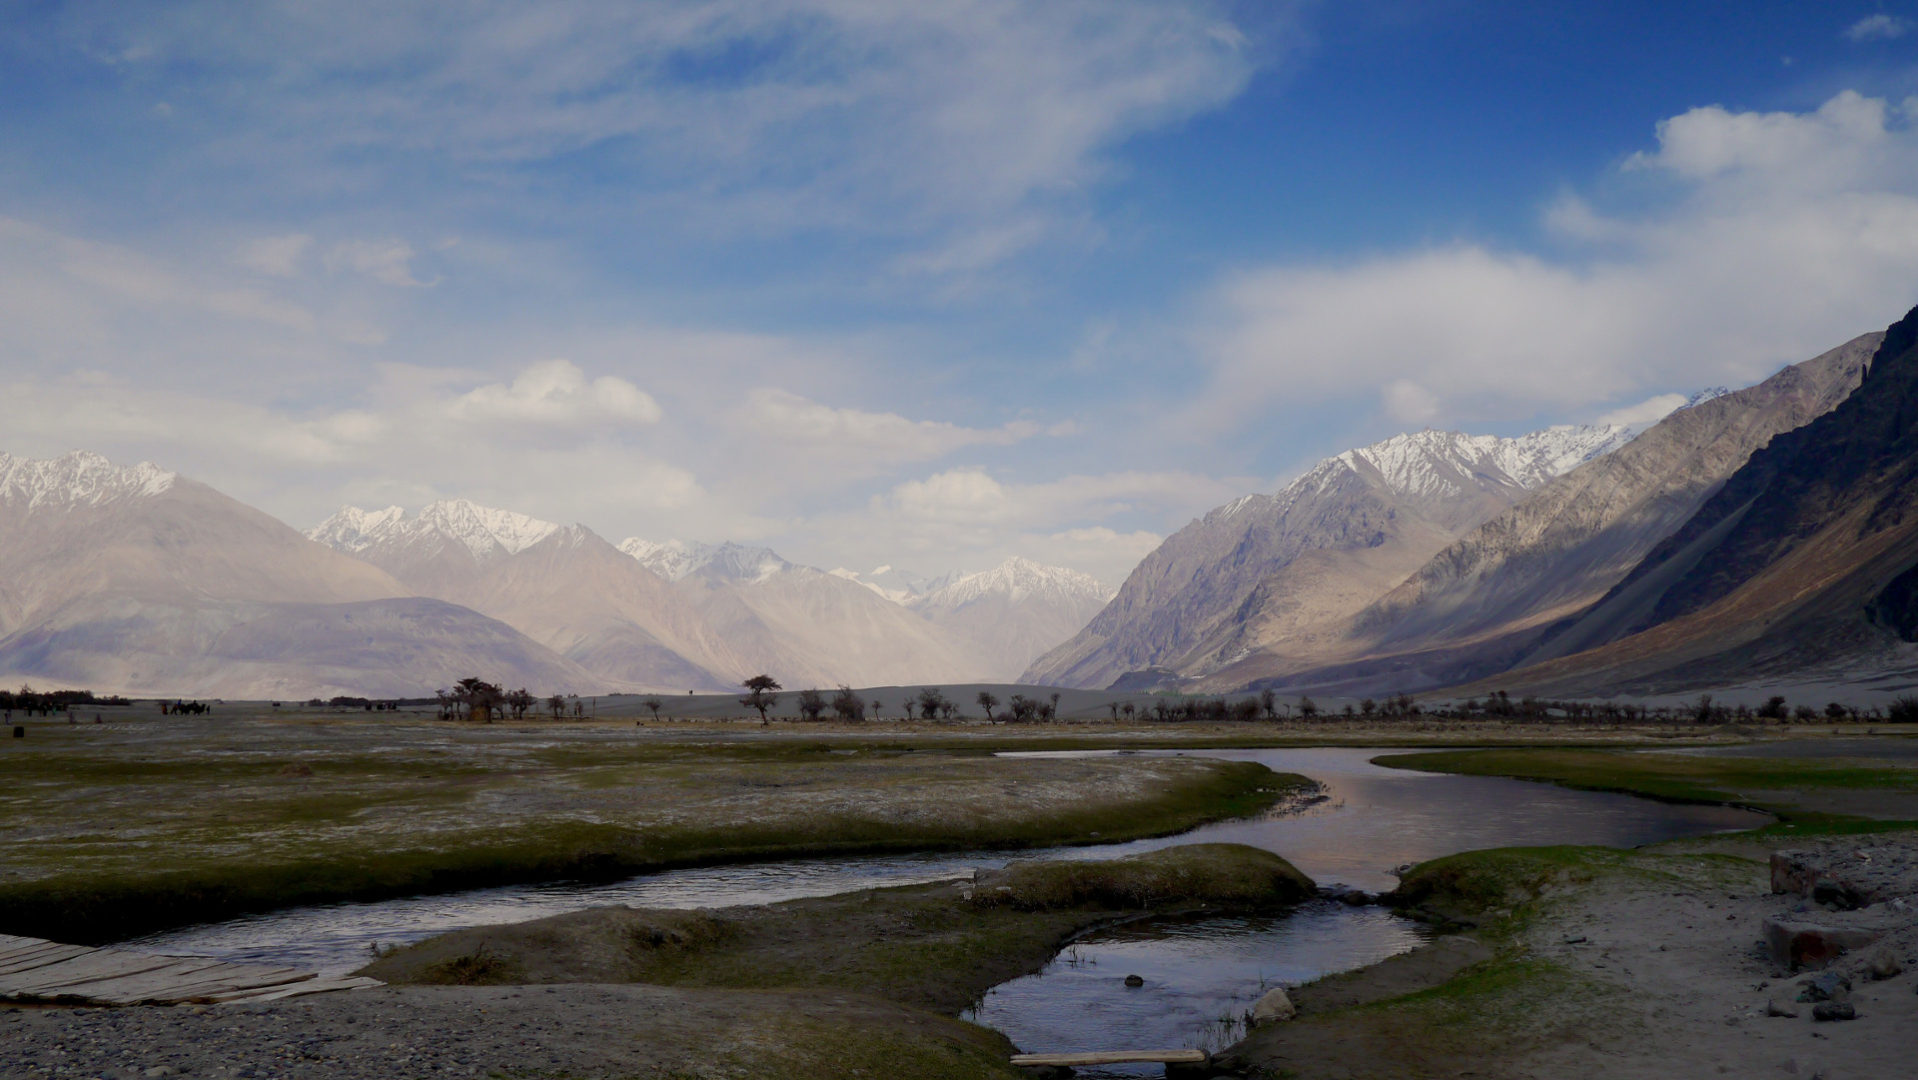 Nubra Valley is one of the most scenic spots in Ladakh (Photo credit: Pudkrong Kaewpichit).